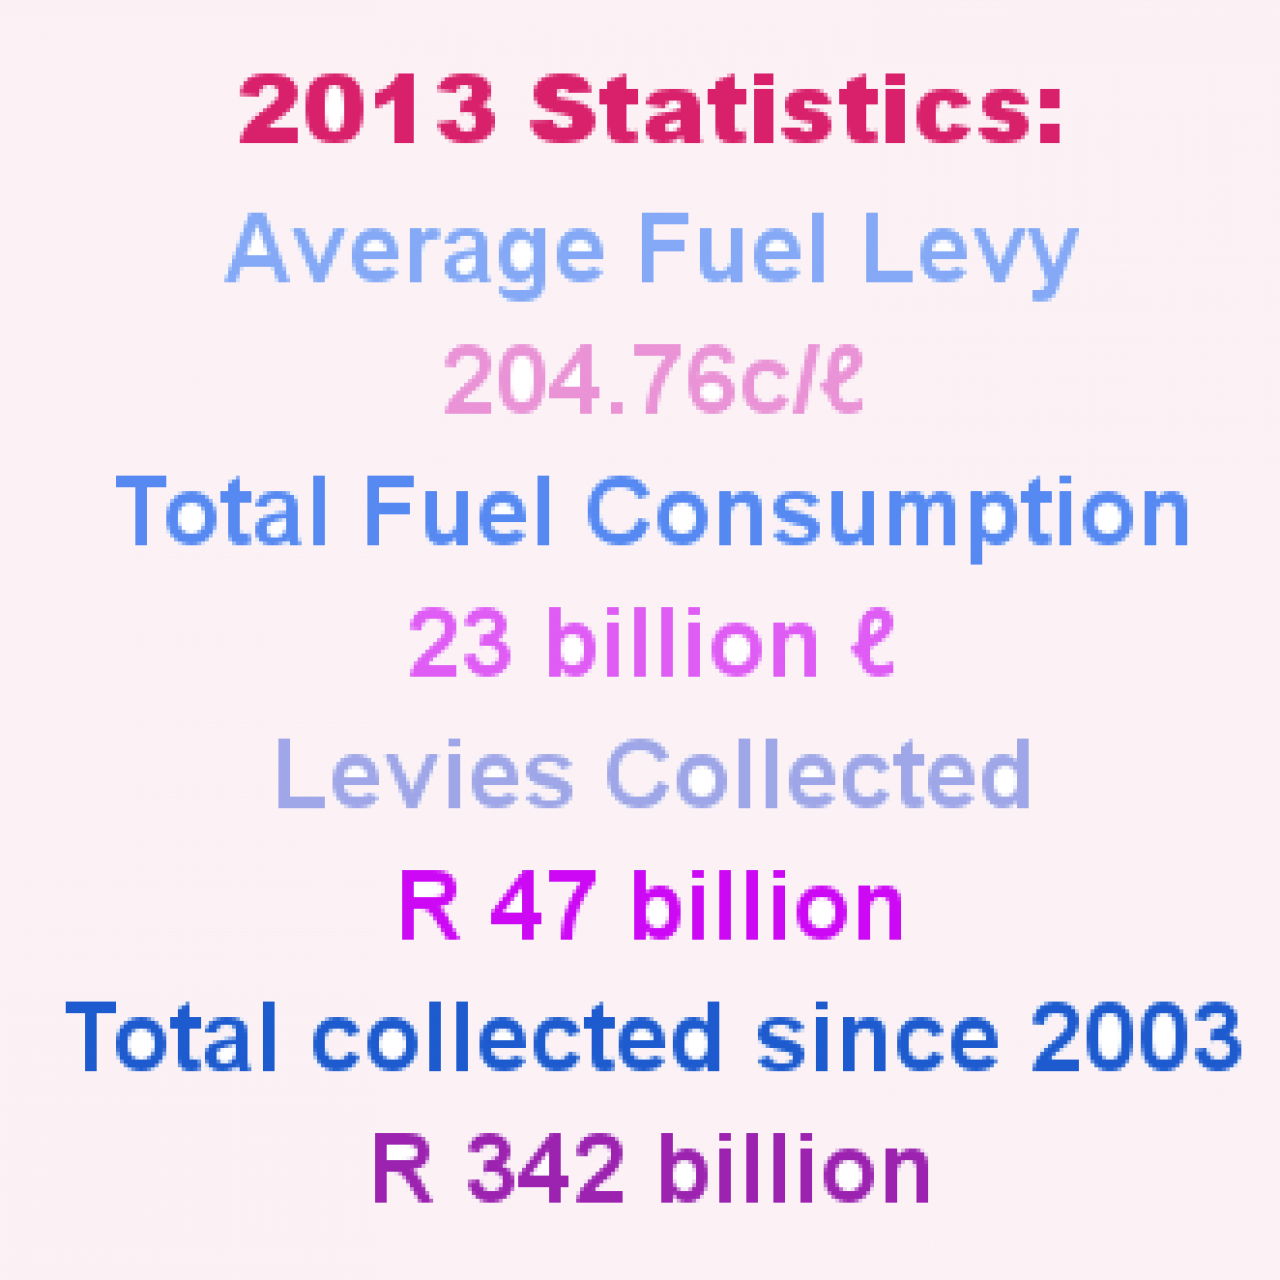 Fuel levy stats 2013